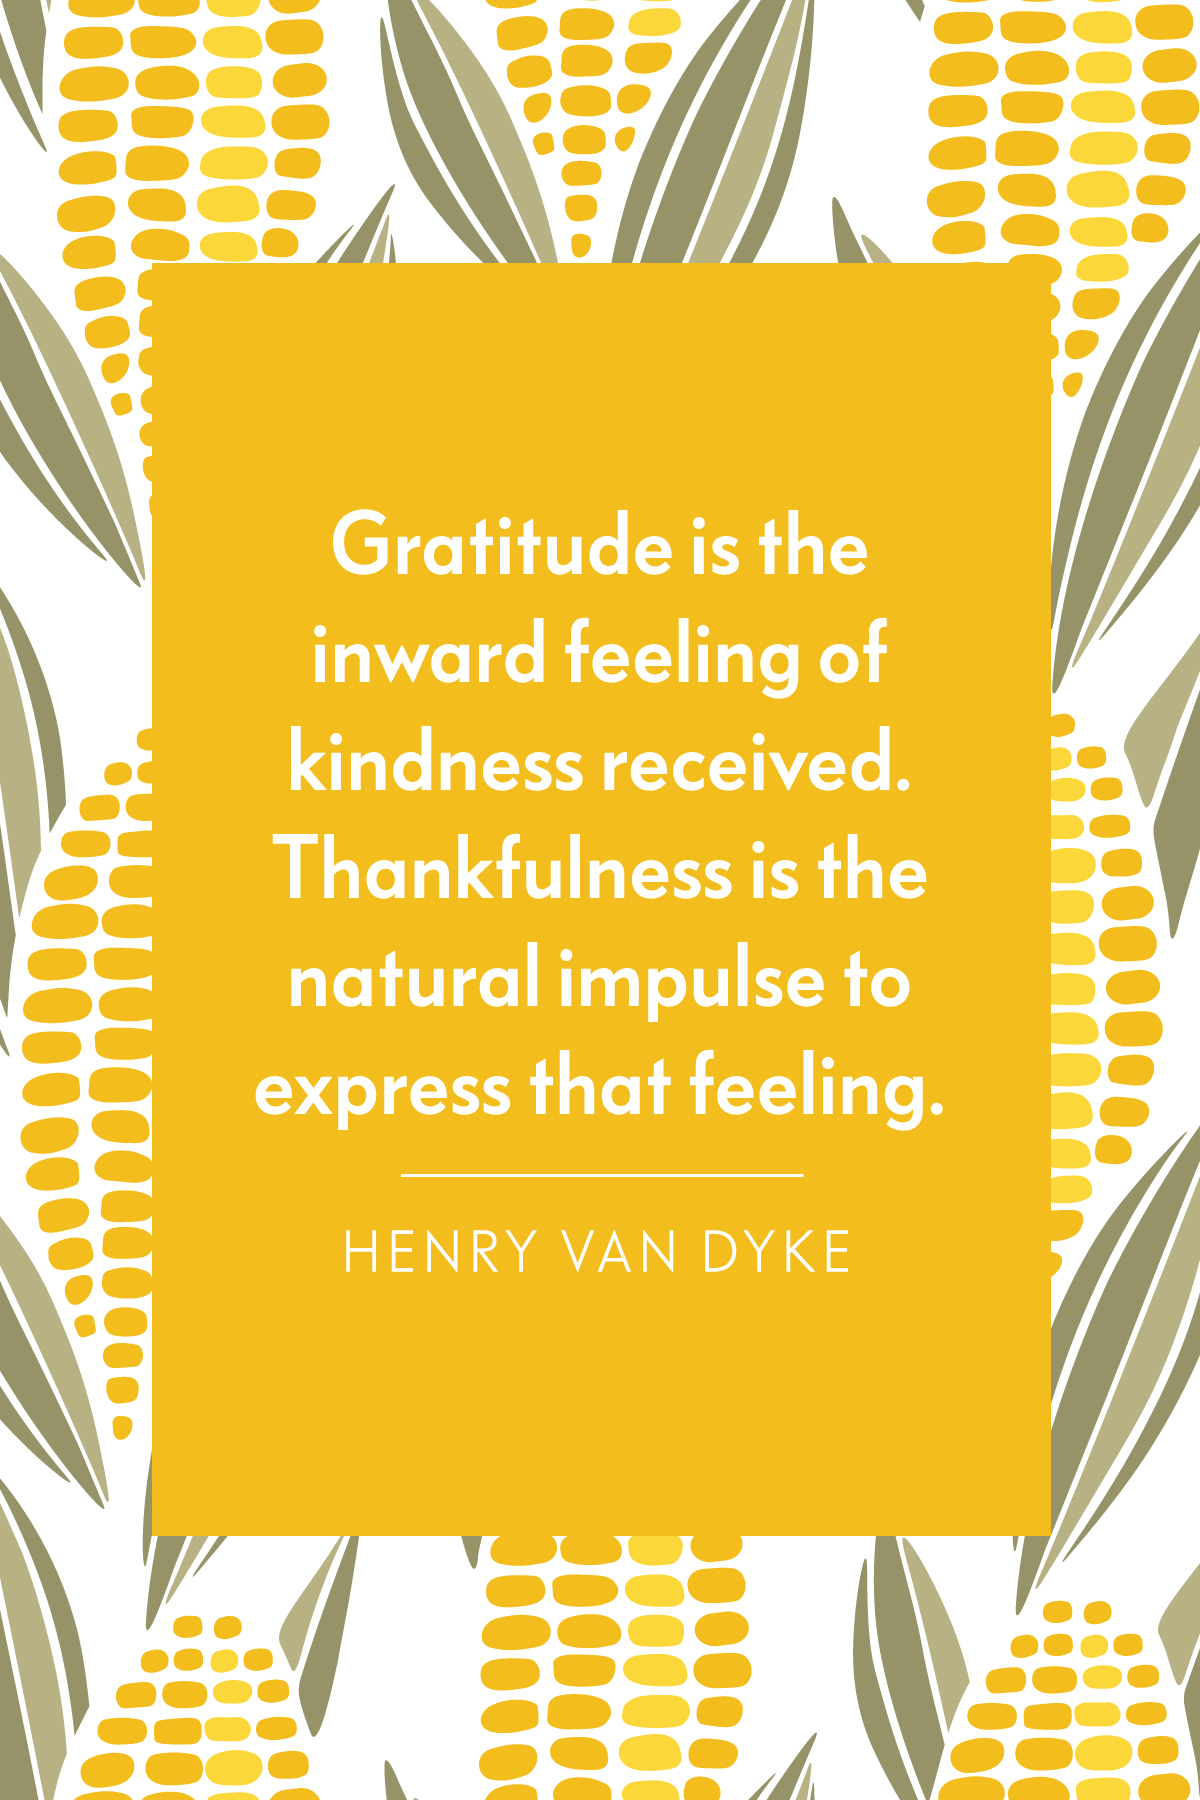 12 Best Thanksgiving Quotes and Blessings That Express Gratitude